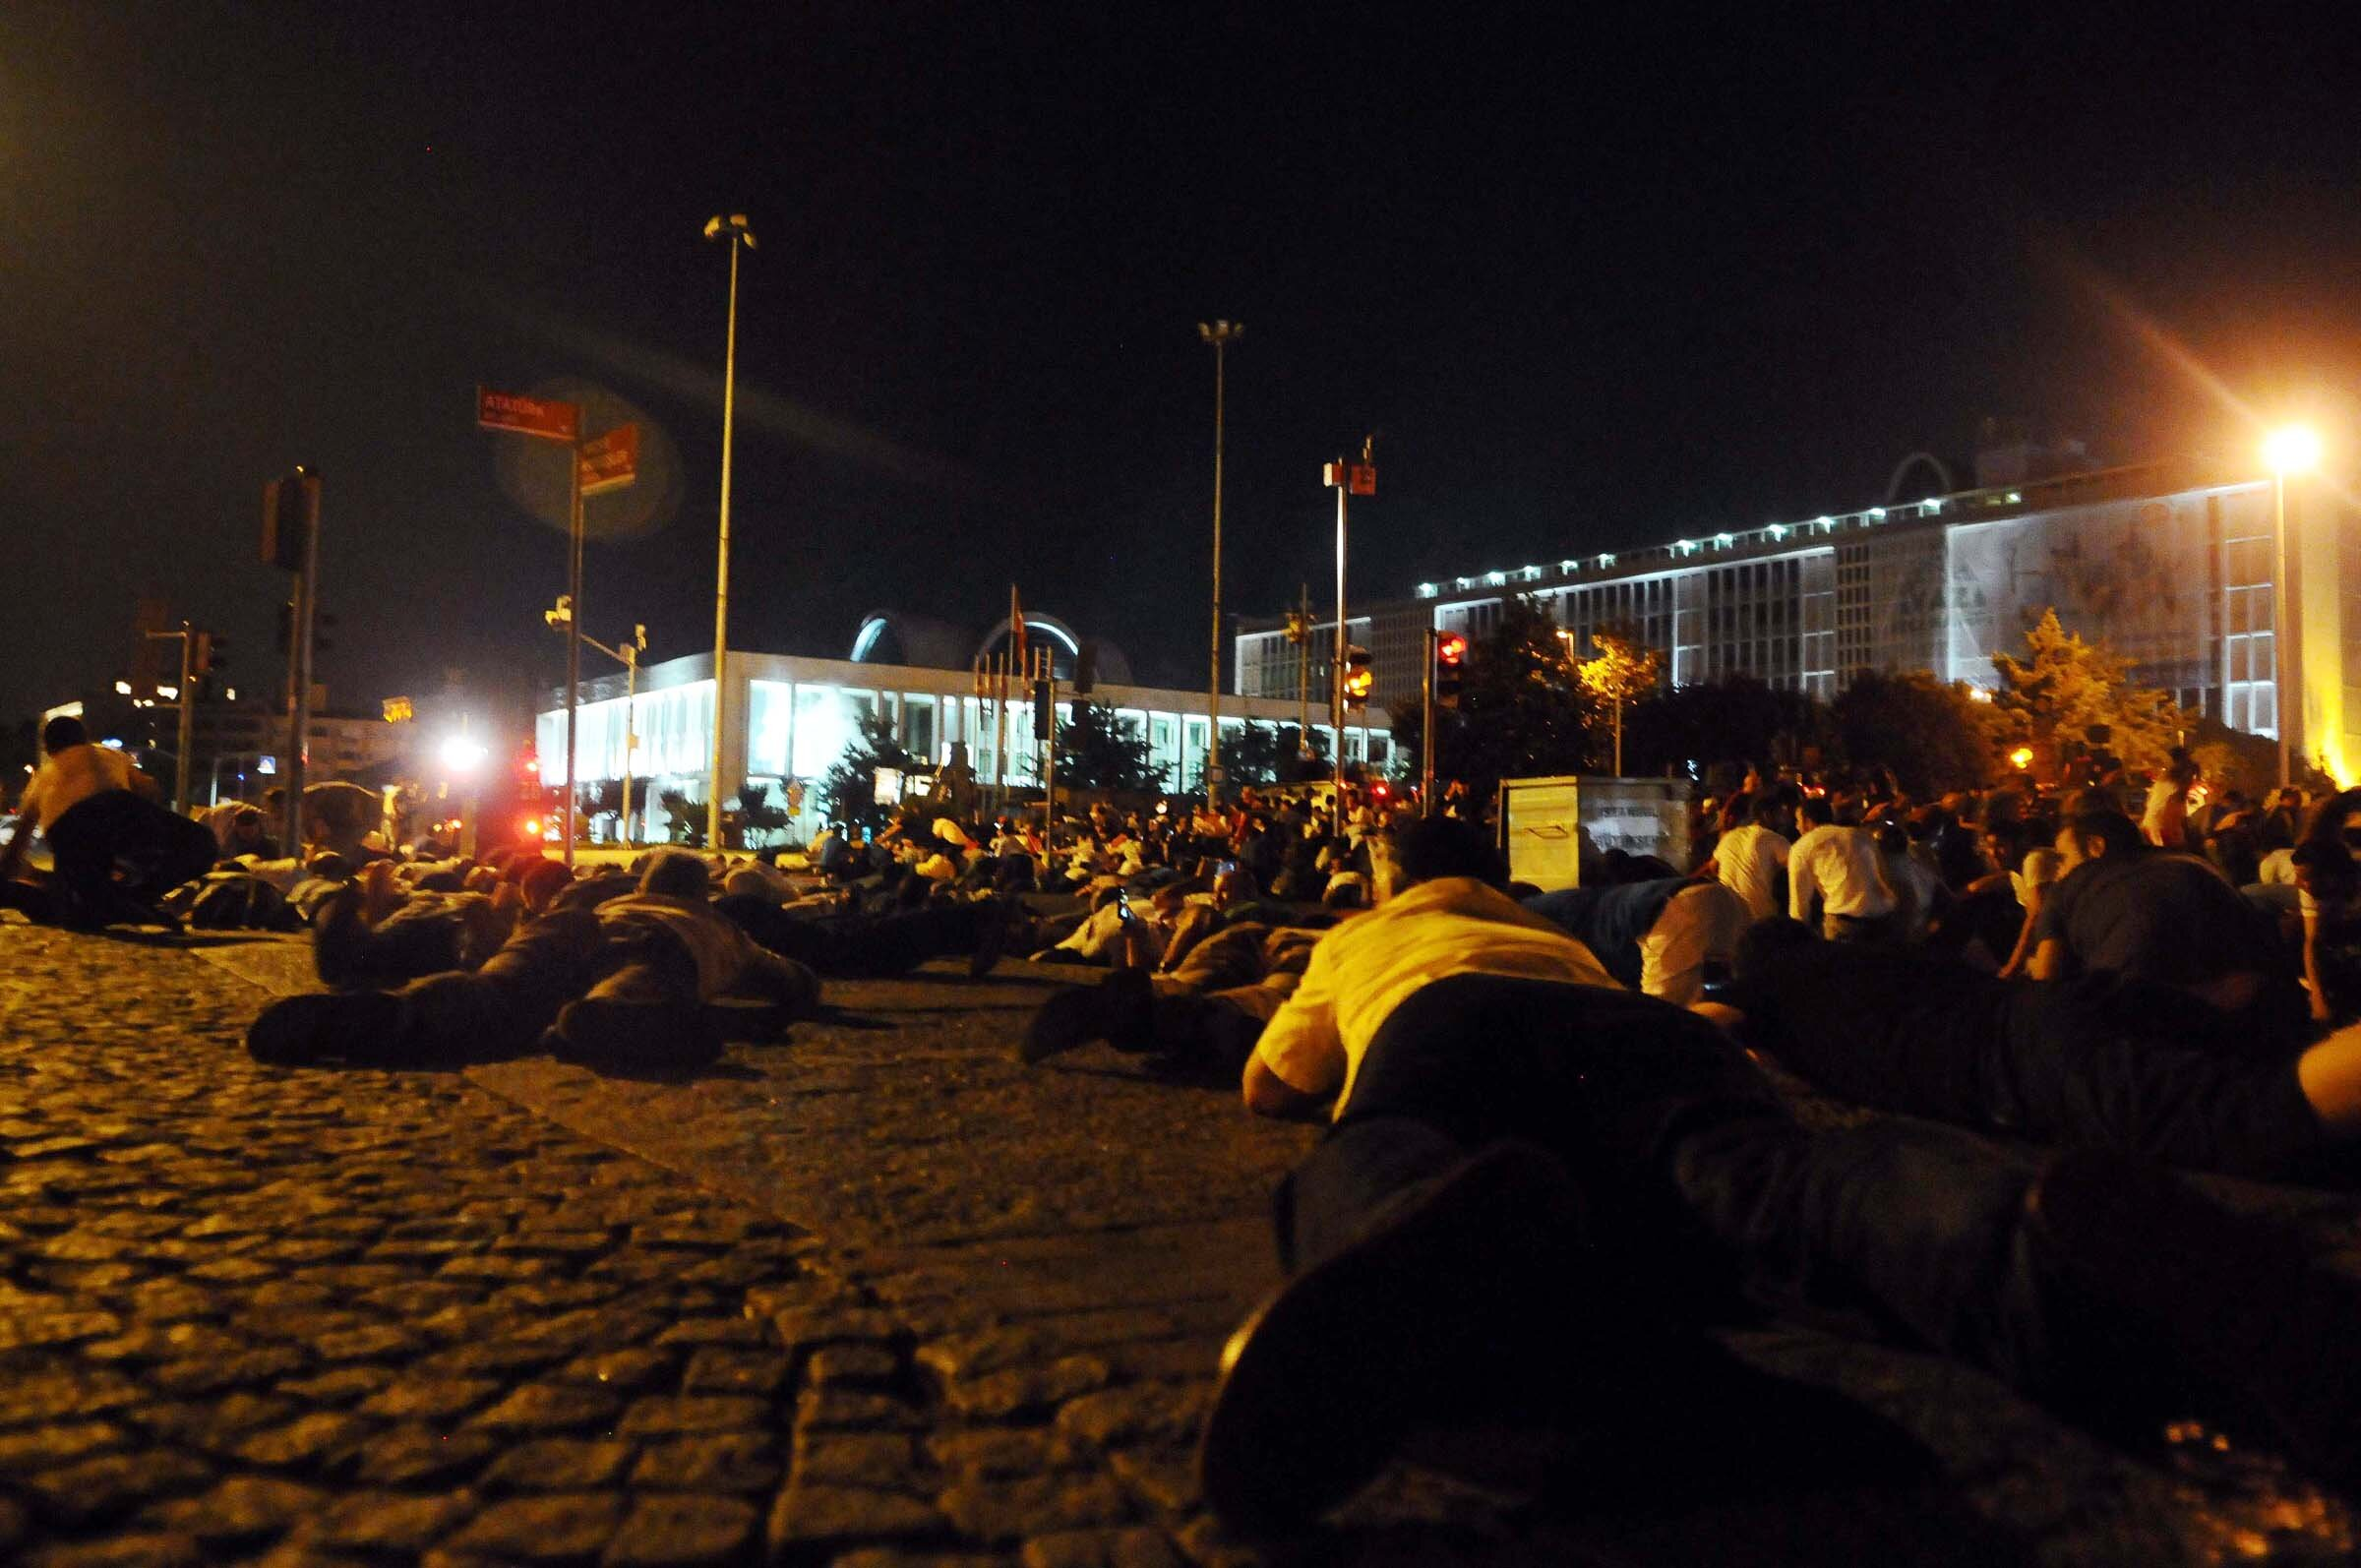 The people who gathered outside of the İBB building, which was the scene of some of the severest clashes in Istanbul, took shelter by lying down after soldiers started firing.